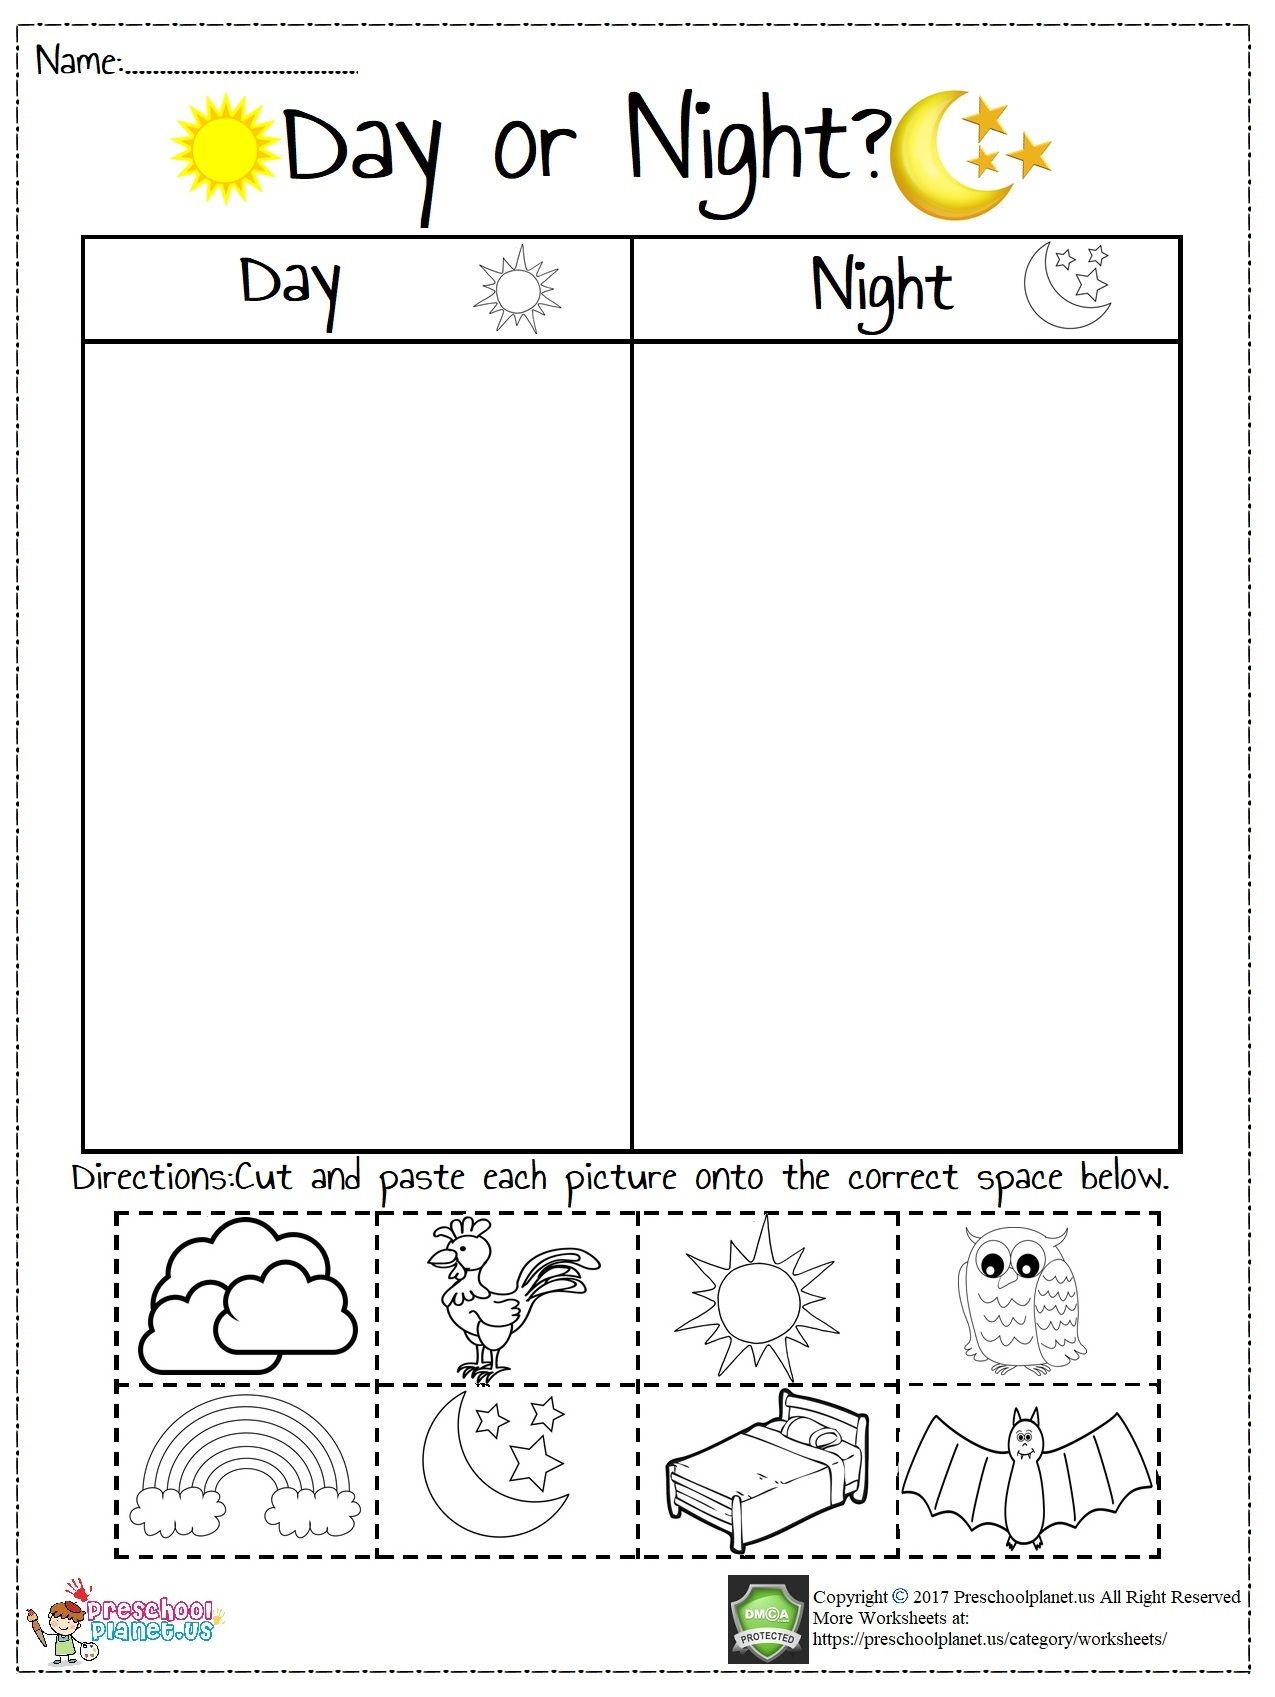 Day And Night Worksheet Kindergarten Science Kindergarten Worksheets Kids Learning Activities